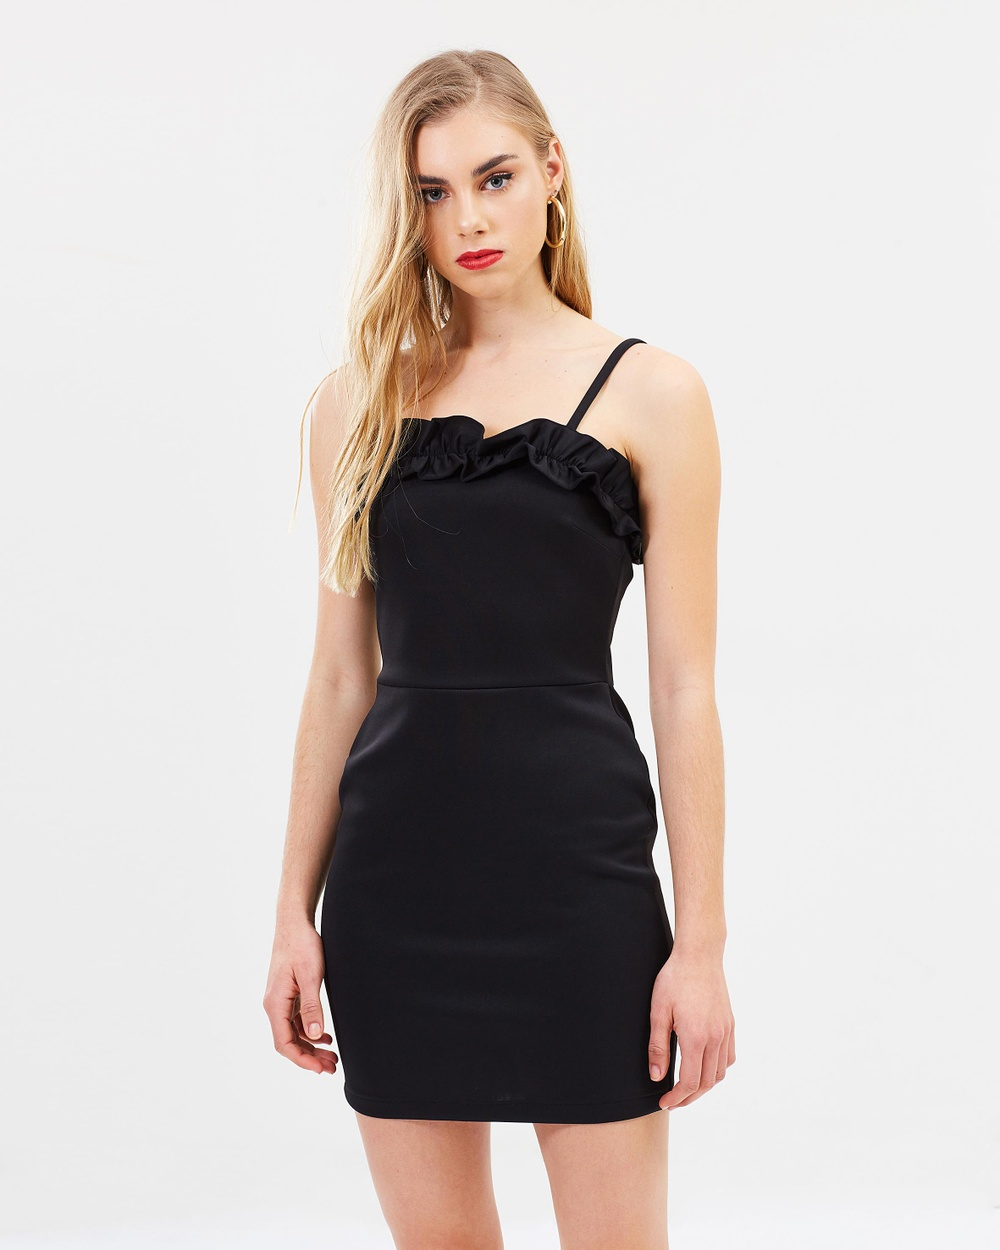 Miss Selfridge Frill Front Body Con Dress Bodycon Dresses Black Frill Front Body-Con Dress